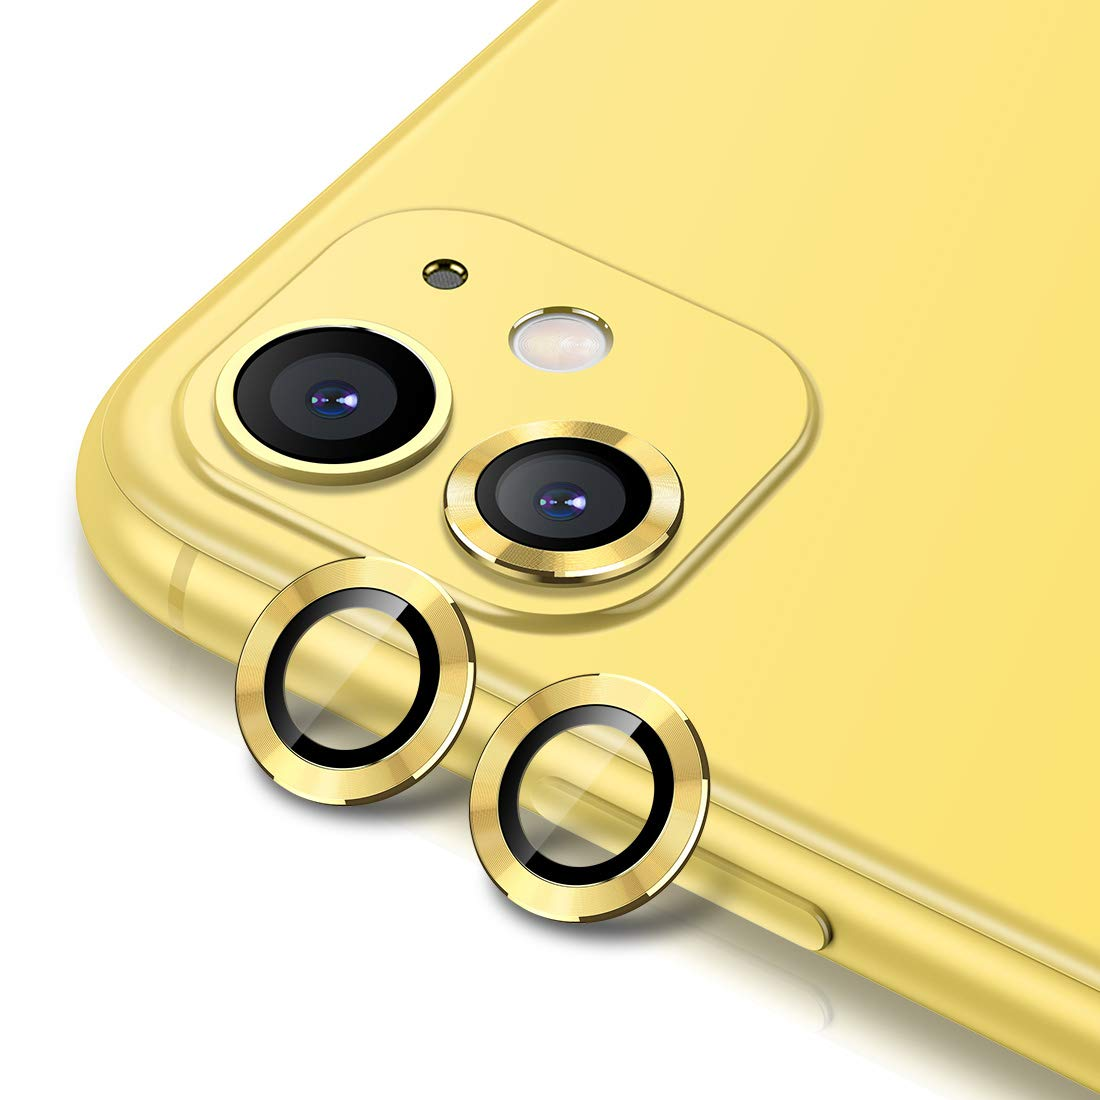 Buluby Camera Lens Protector for iPhone 11 (6.1 inch),Premium Tempered Glass Film Aluminum Alloy Lens Screen Cover Case Yellow